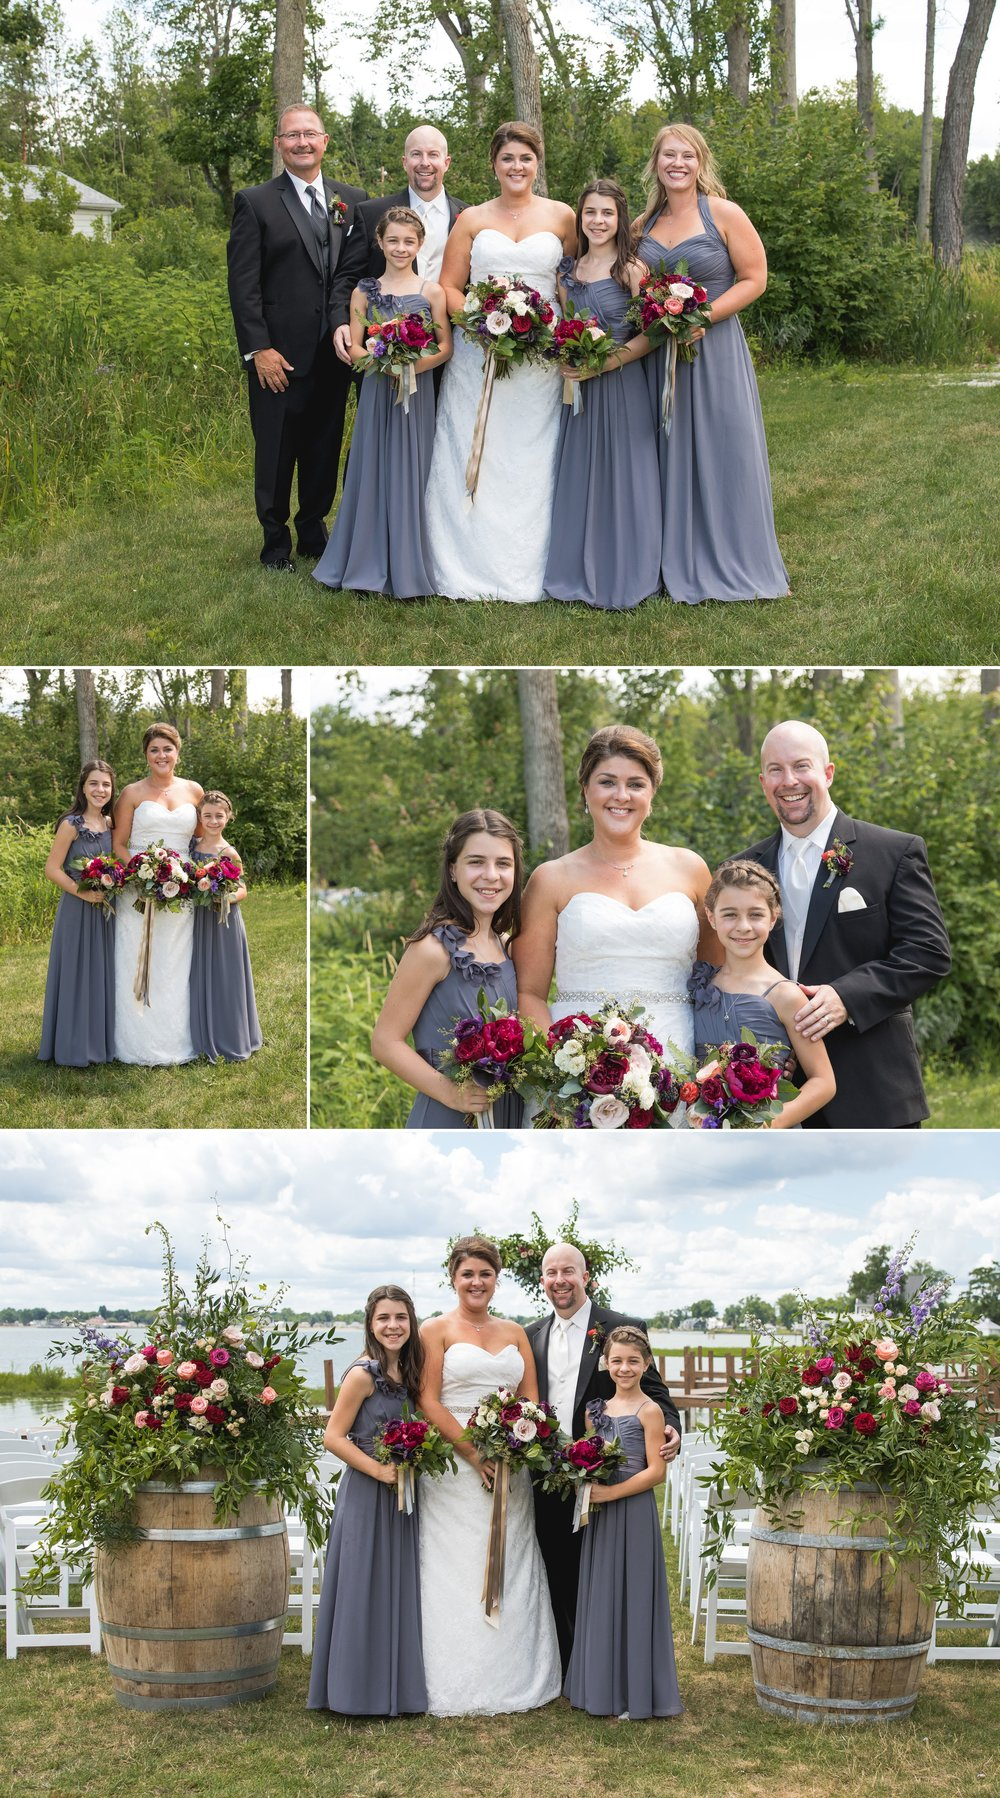 008-Buckeye-lake-winery-wedding-couple-wedding-party-portraits-columbus-ohio-wedding-muschlitz-photography-06.JPG